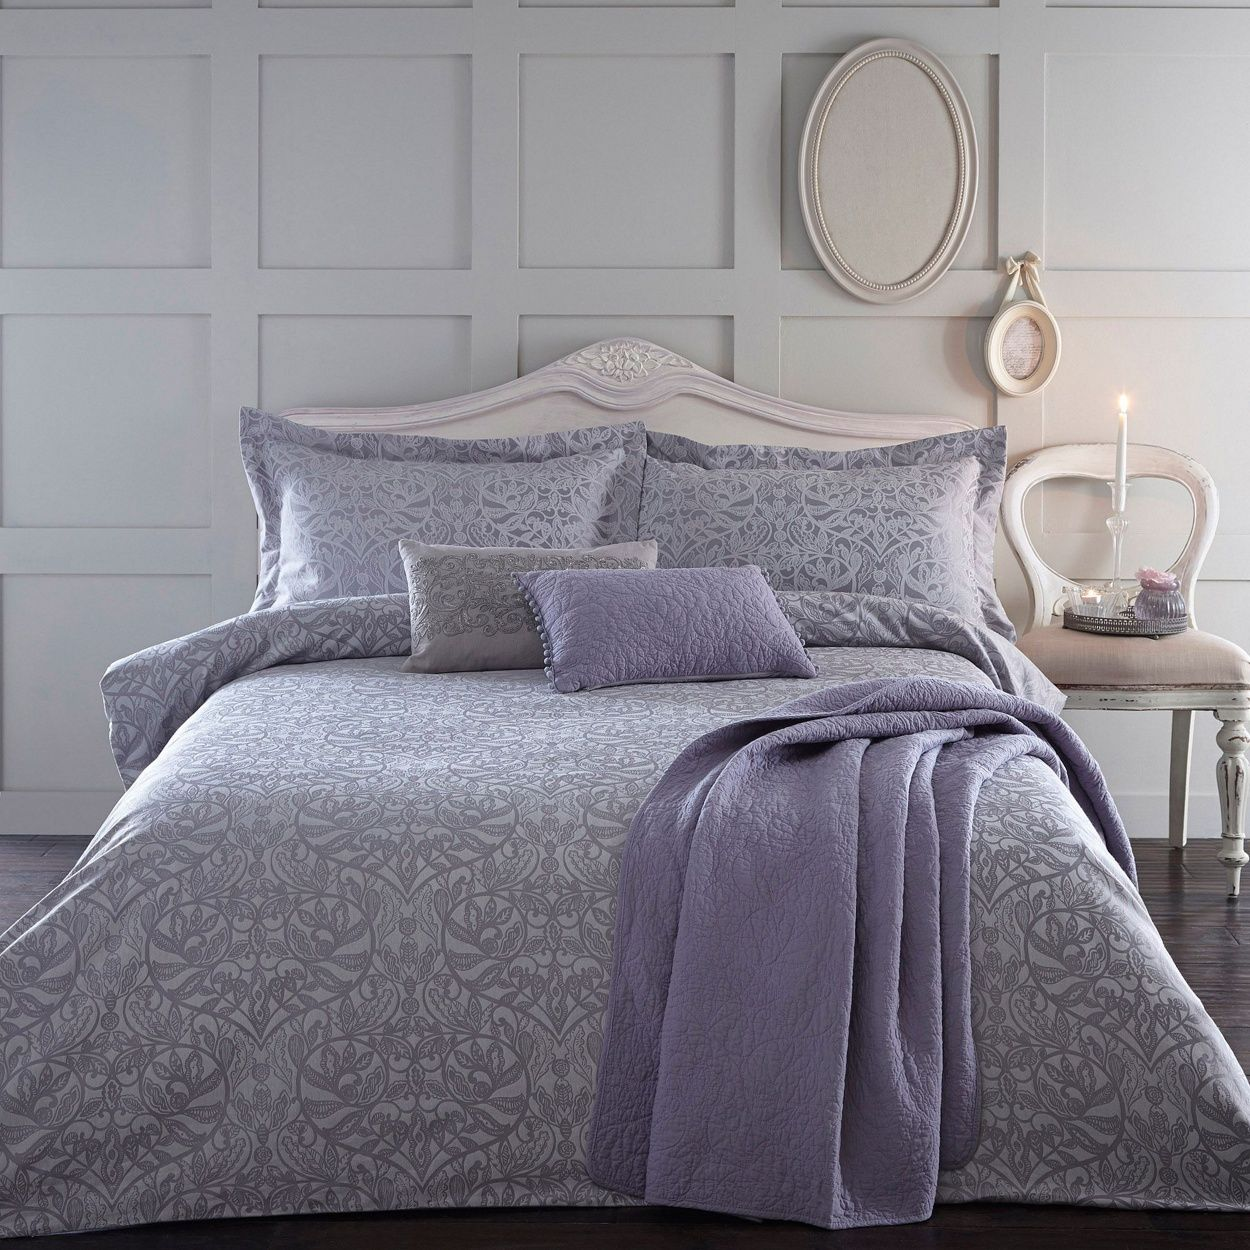 Bedroom Sets Georgia perfect for creating a sense of luxury, this bedding set features